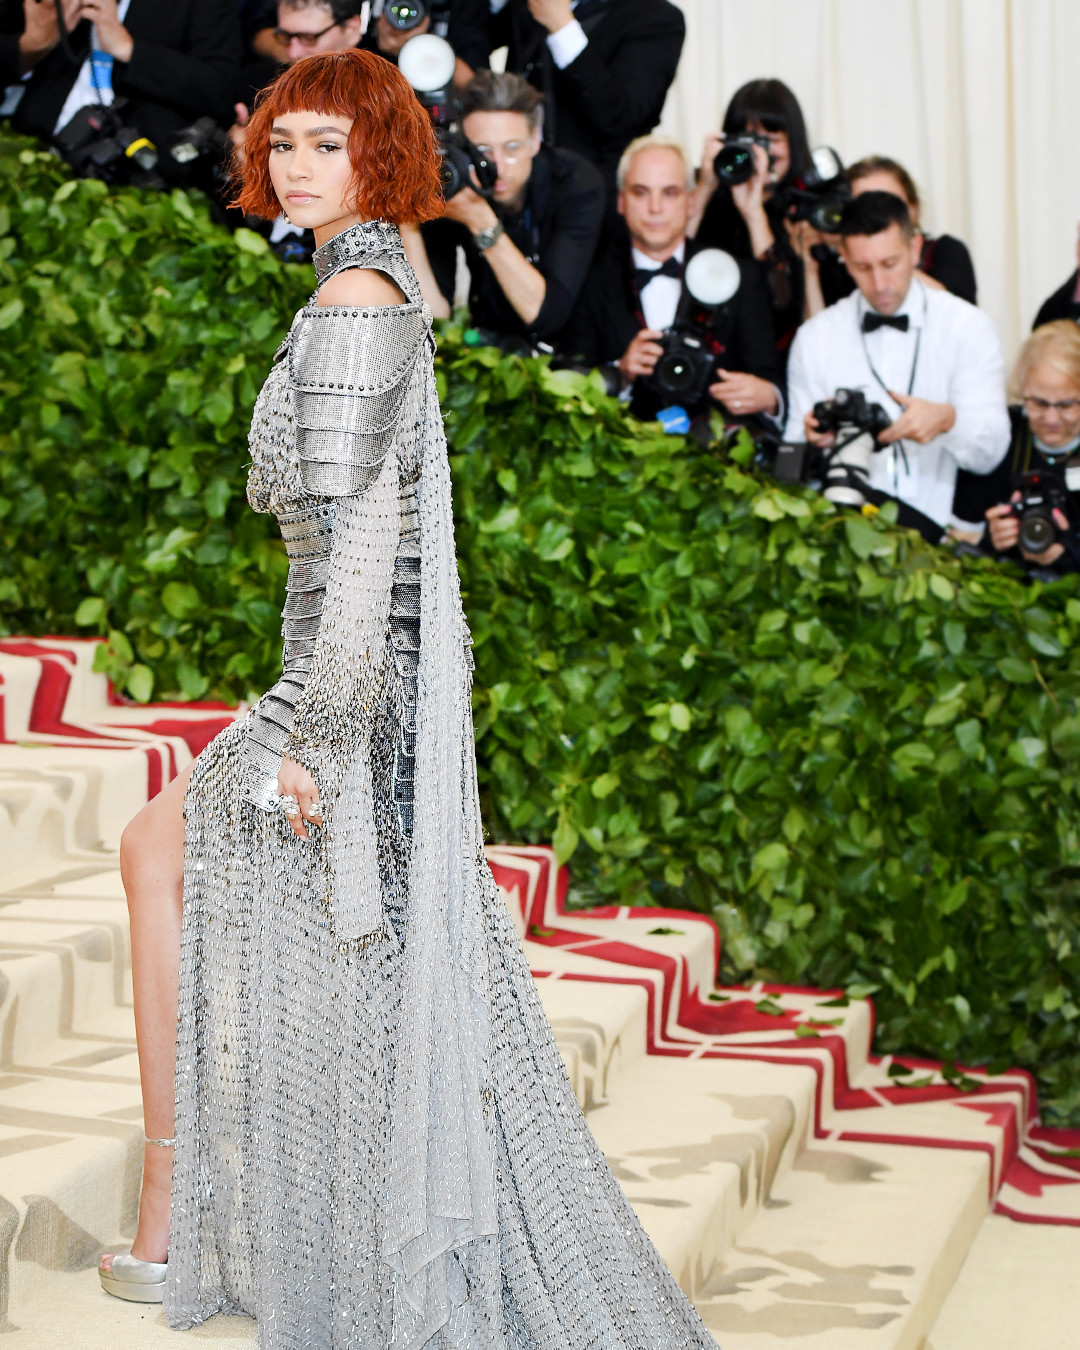 Zendaya Materializes Girl Power With Homage To Joan Of Arc